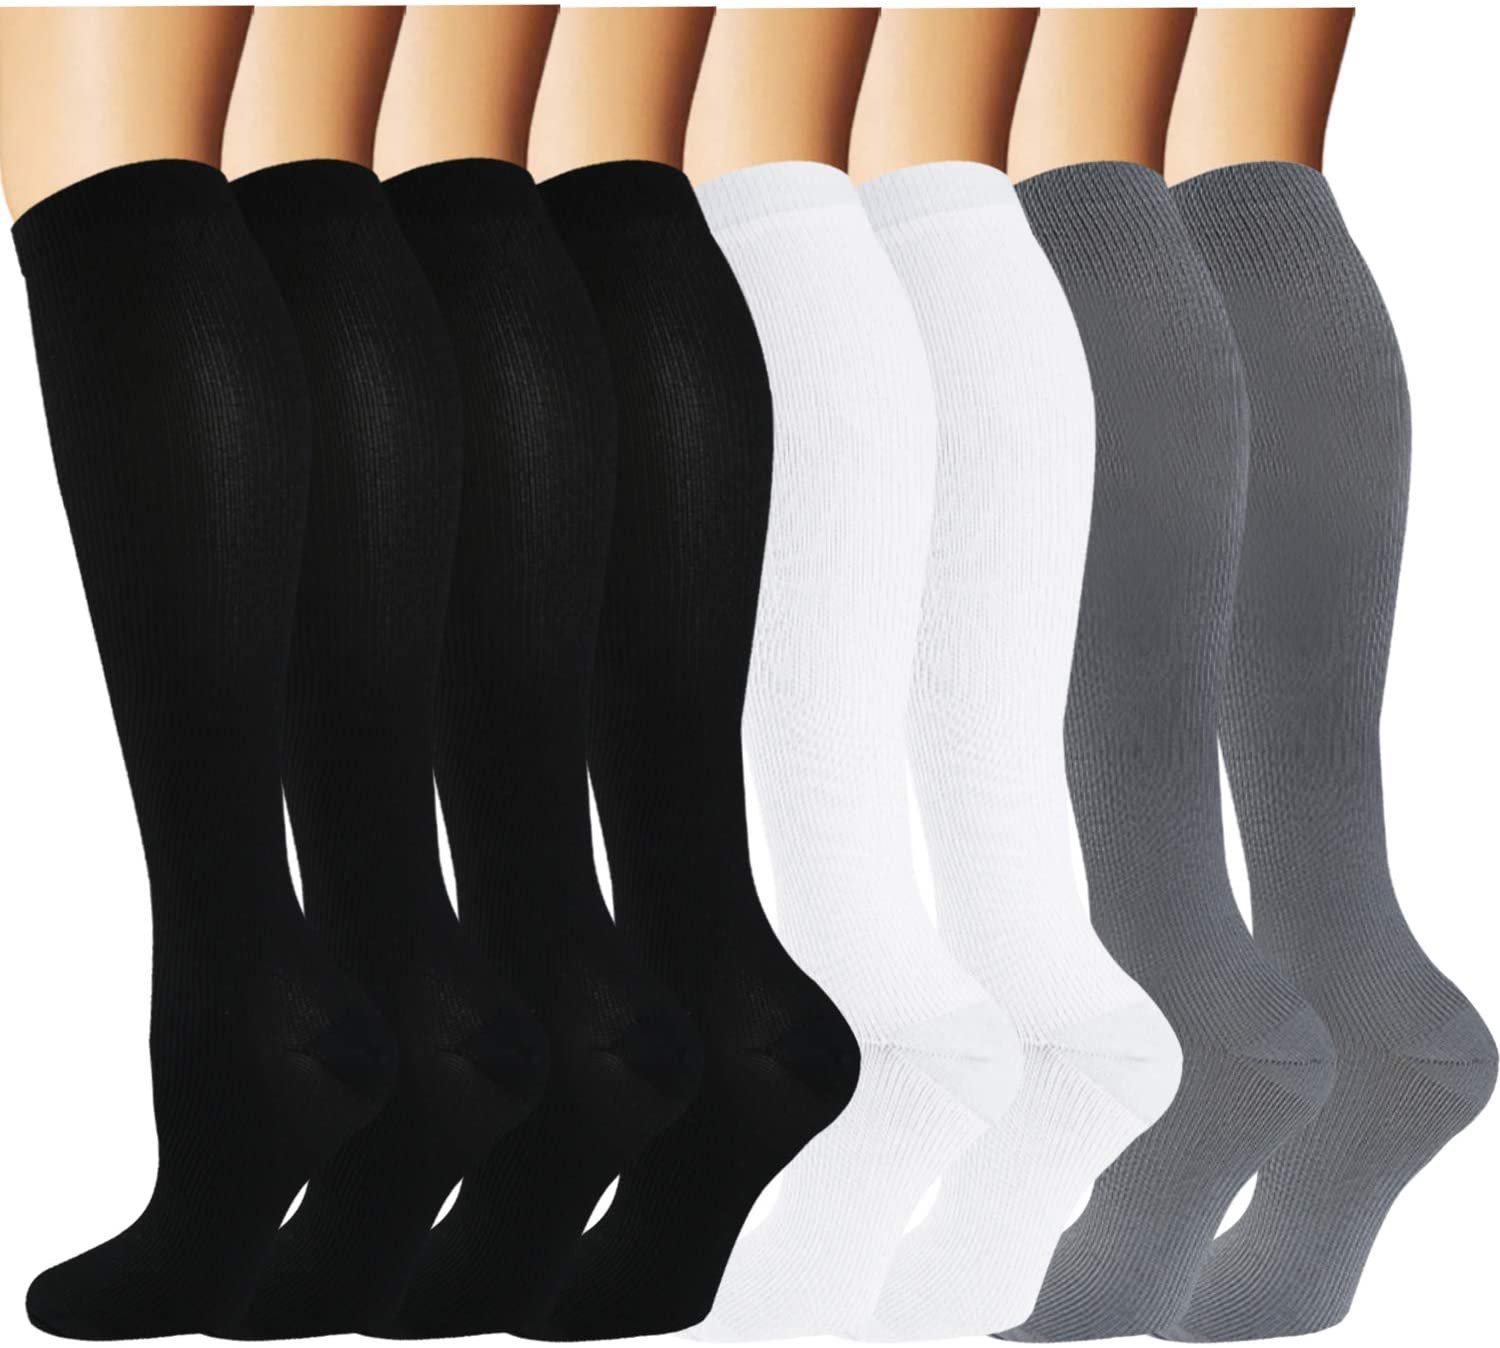 Knee High Compression Socks for Men & Women(8 Pairs)-Best for Running,Athletic and Travel -15-20mmHg